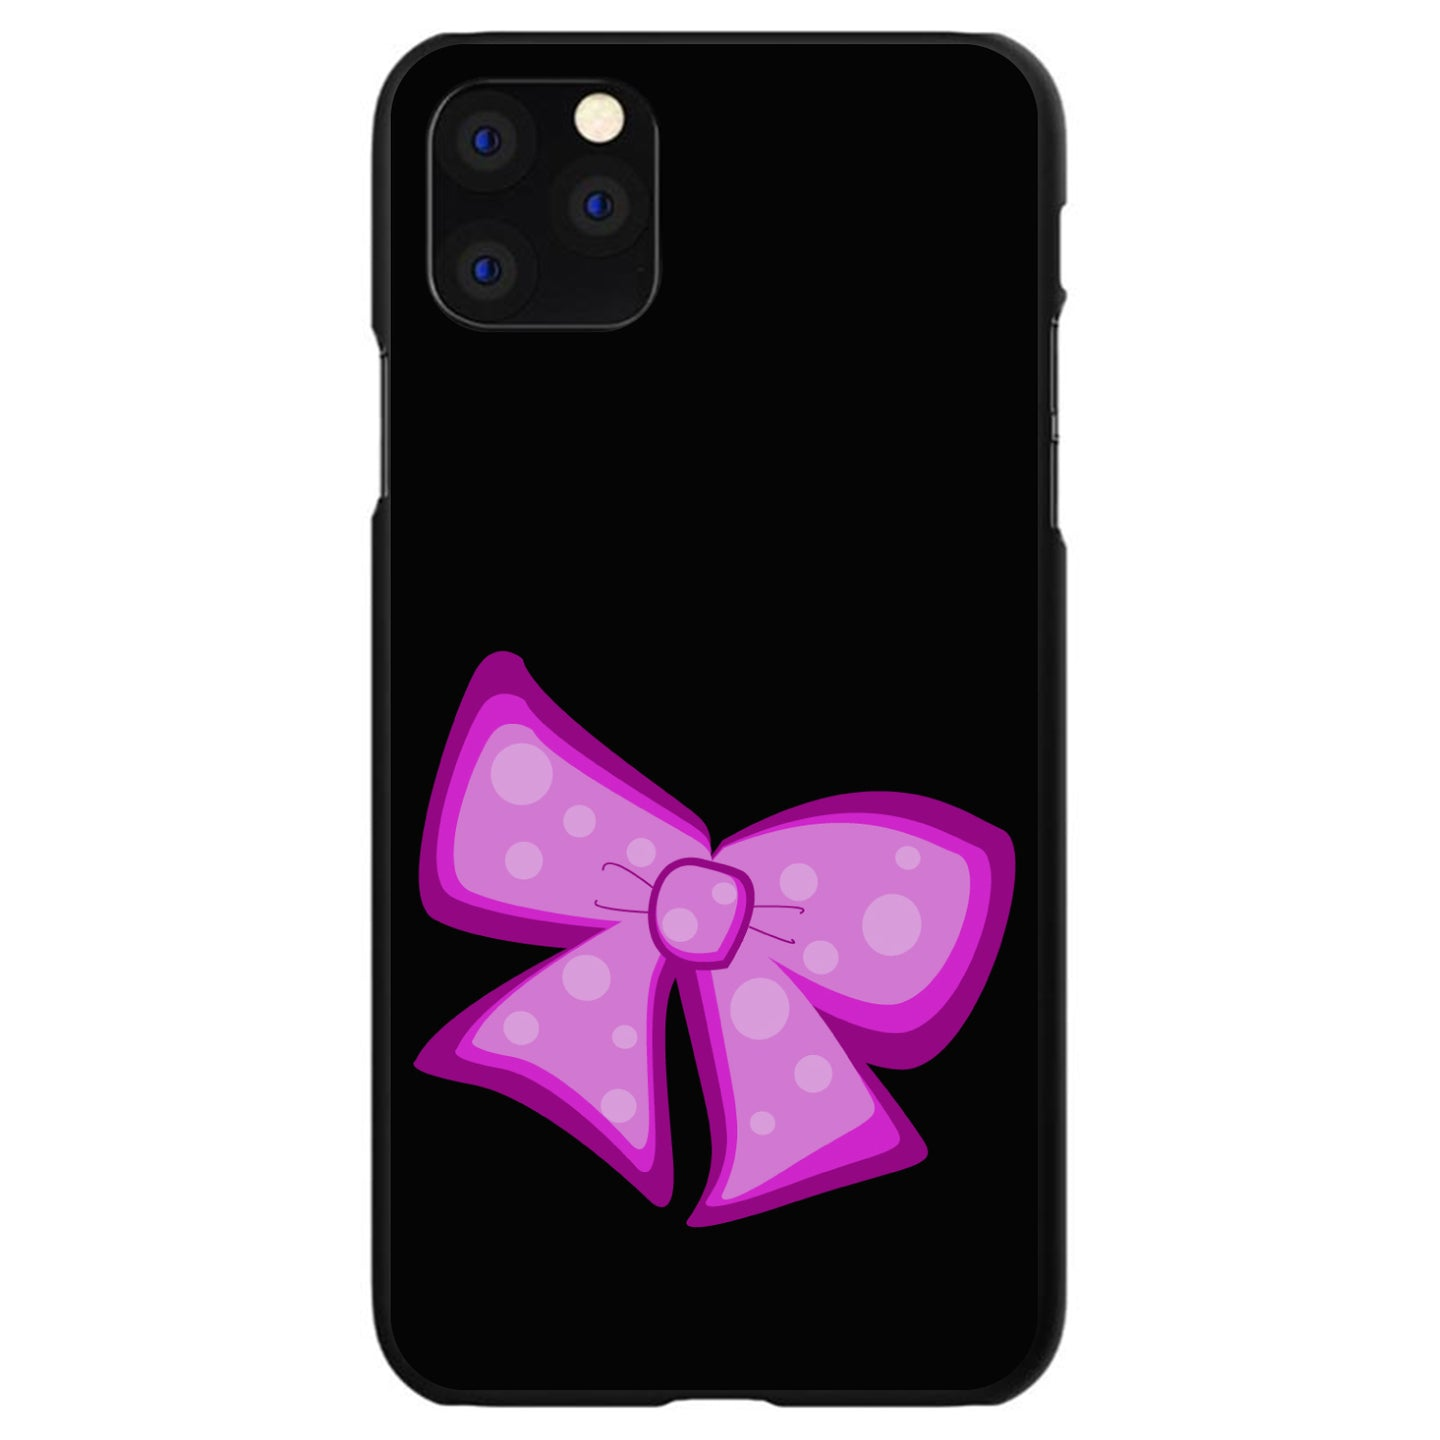 DistinctInk® Hard Plastic Snap-On Case for Apple iPhone - Pink Black Bow Ribbon